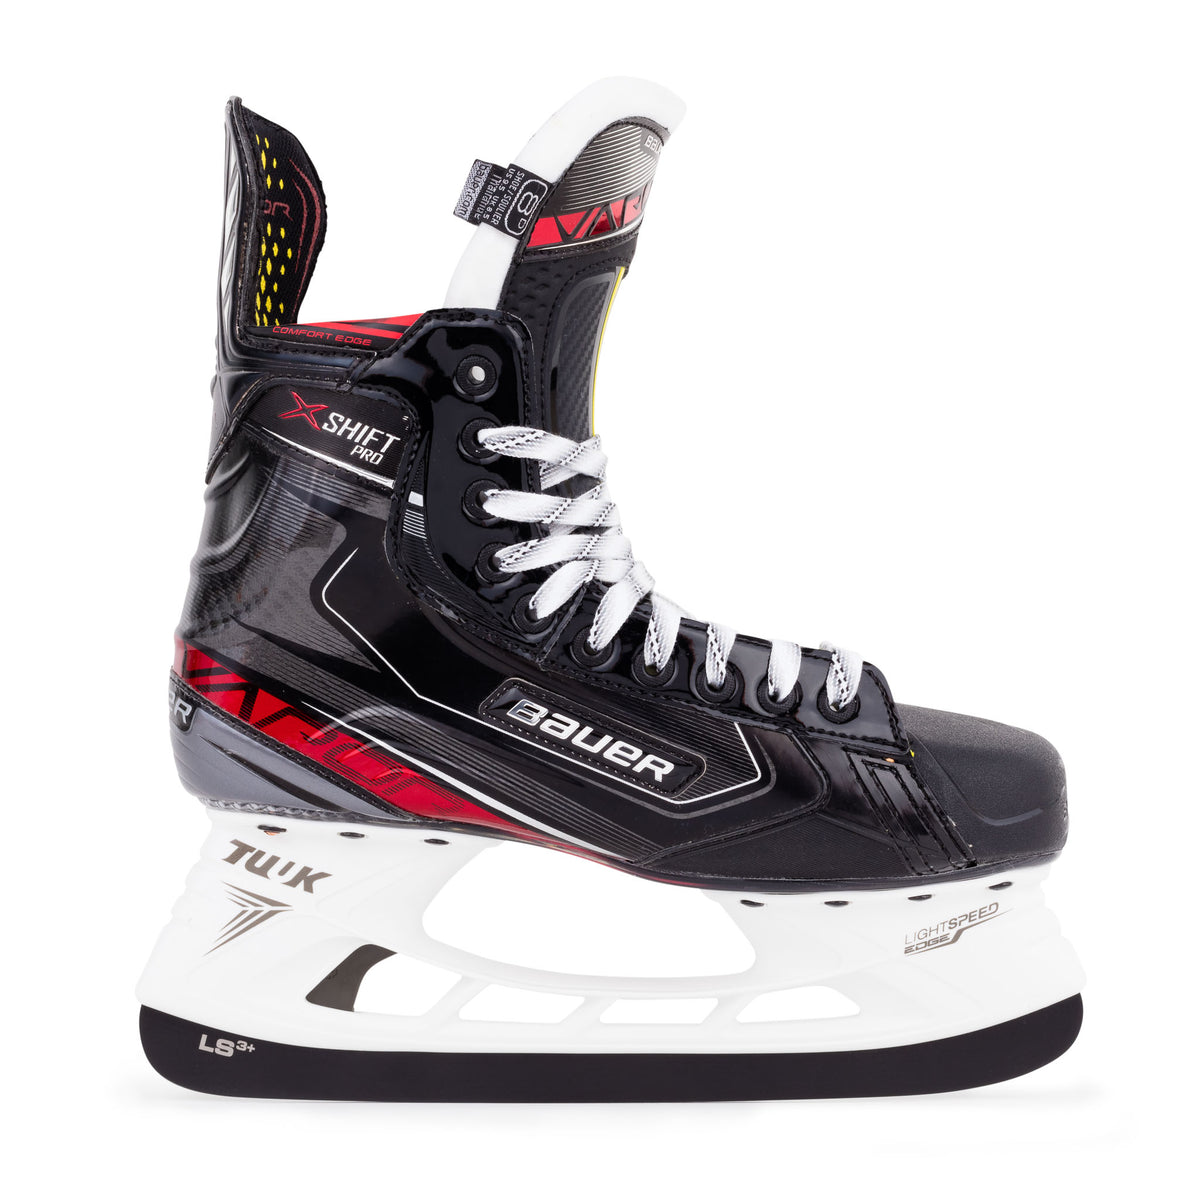 Bauer Vapor X Shift Pro Senior Hockey Skates